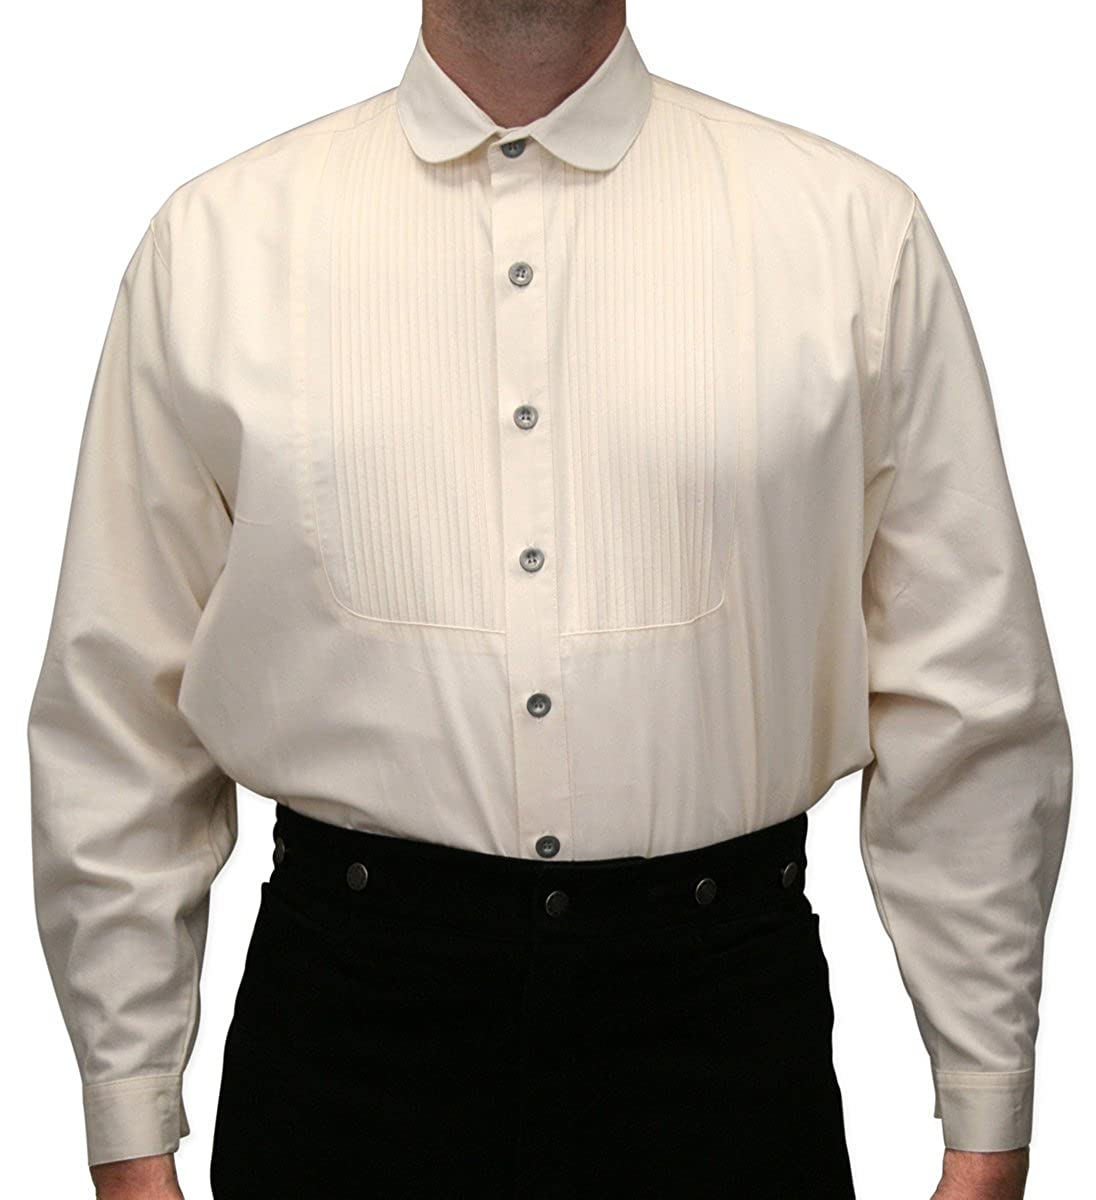 Men's Steampunk Costume Essentials Historical Emporium Mens Pleated Edwardian Round Club Collar Dress Shirt $59.95 AT vintagedancer.com